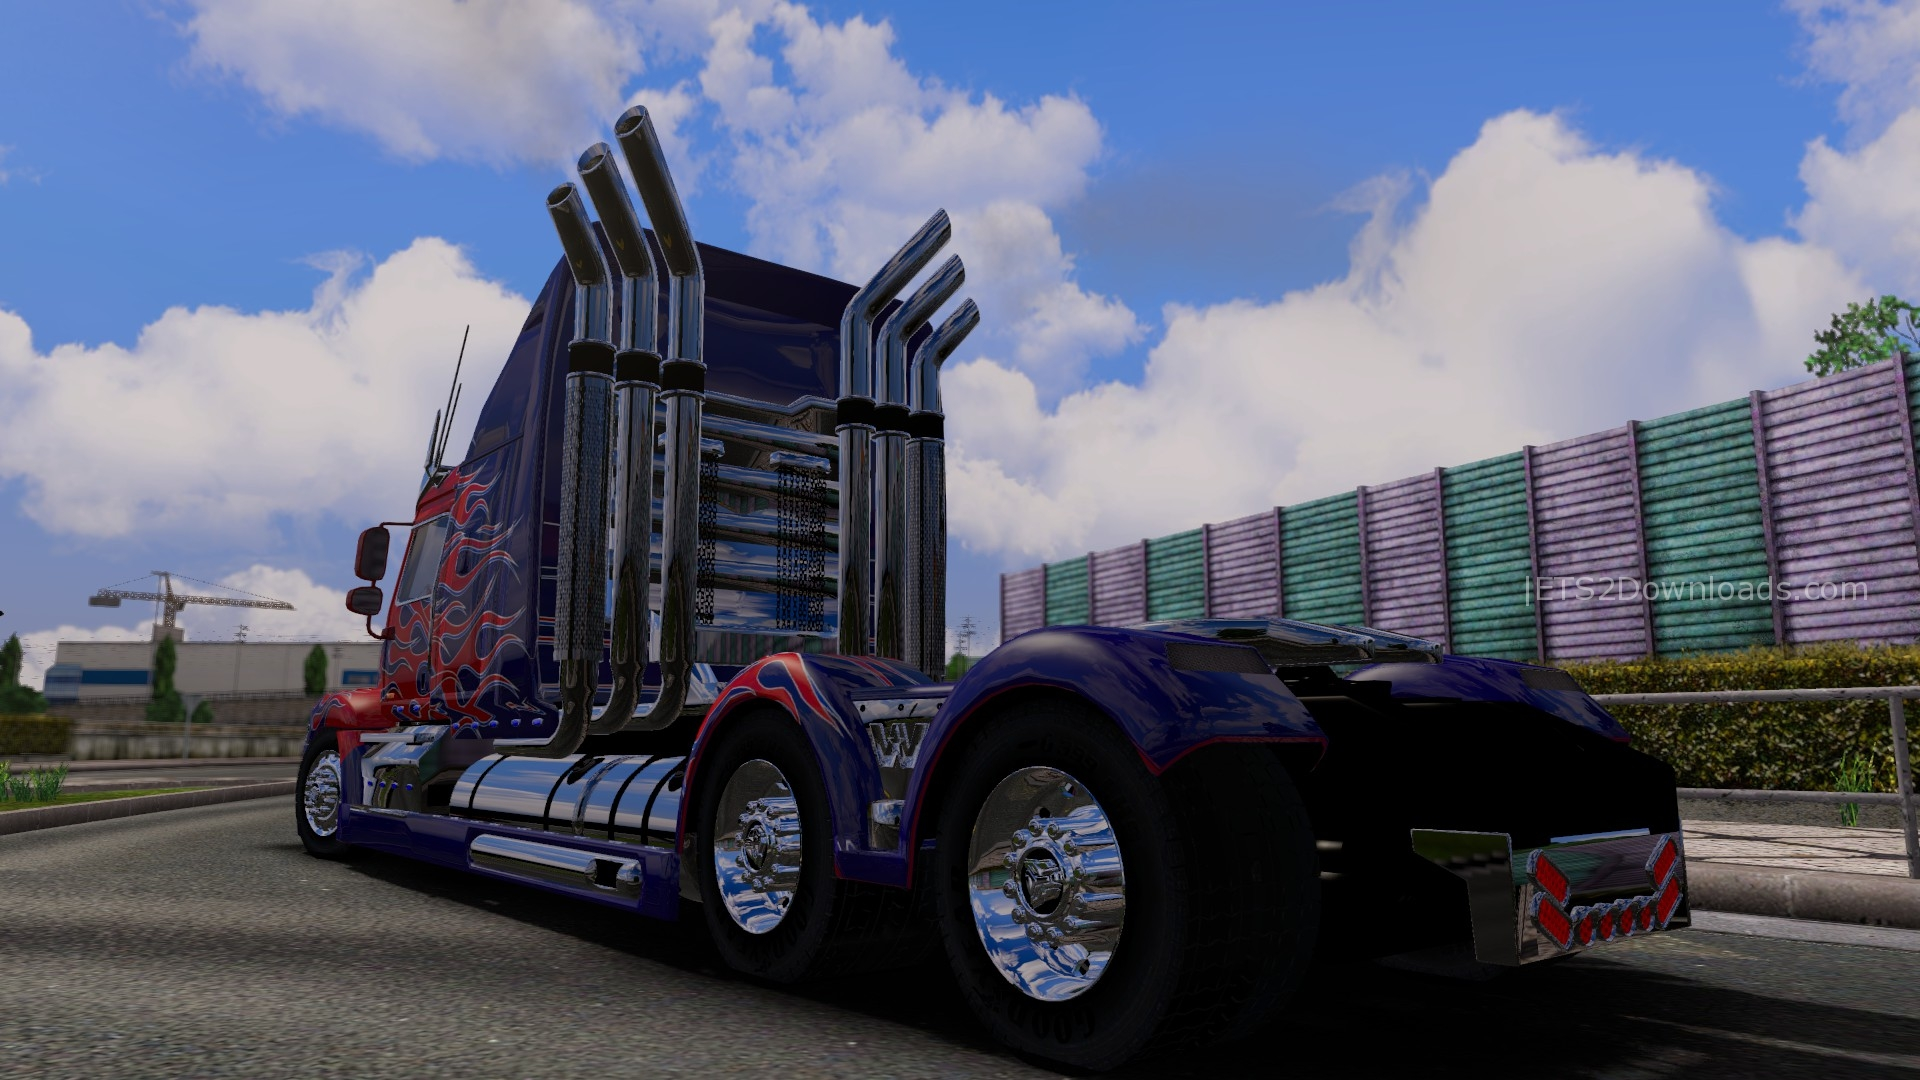 Hqdefault further Optimus Prime Truck Transformer further Optimus Prime Truck Wallpaper X Images also Index also Maxresdefault. on transformers 4 optimus prime truck